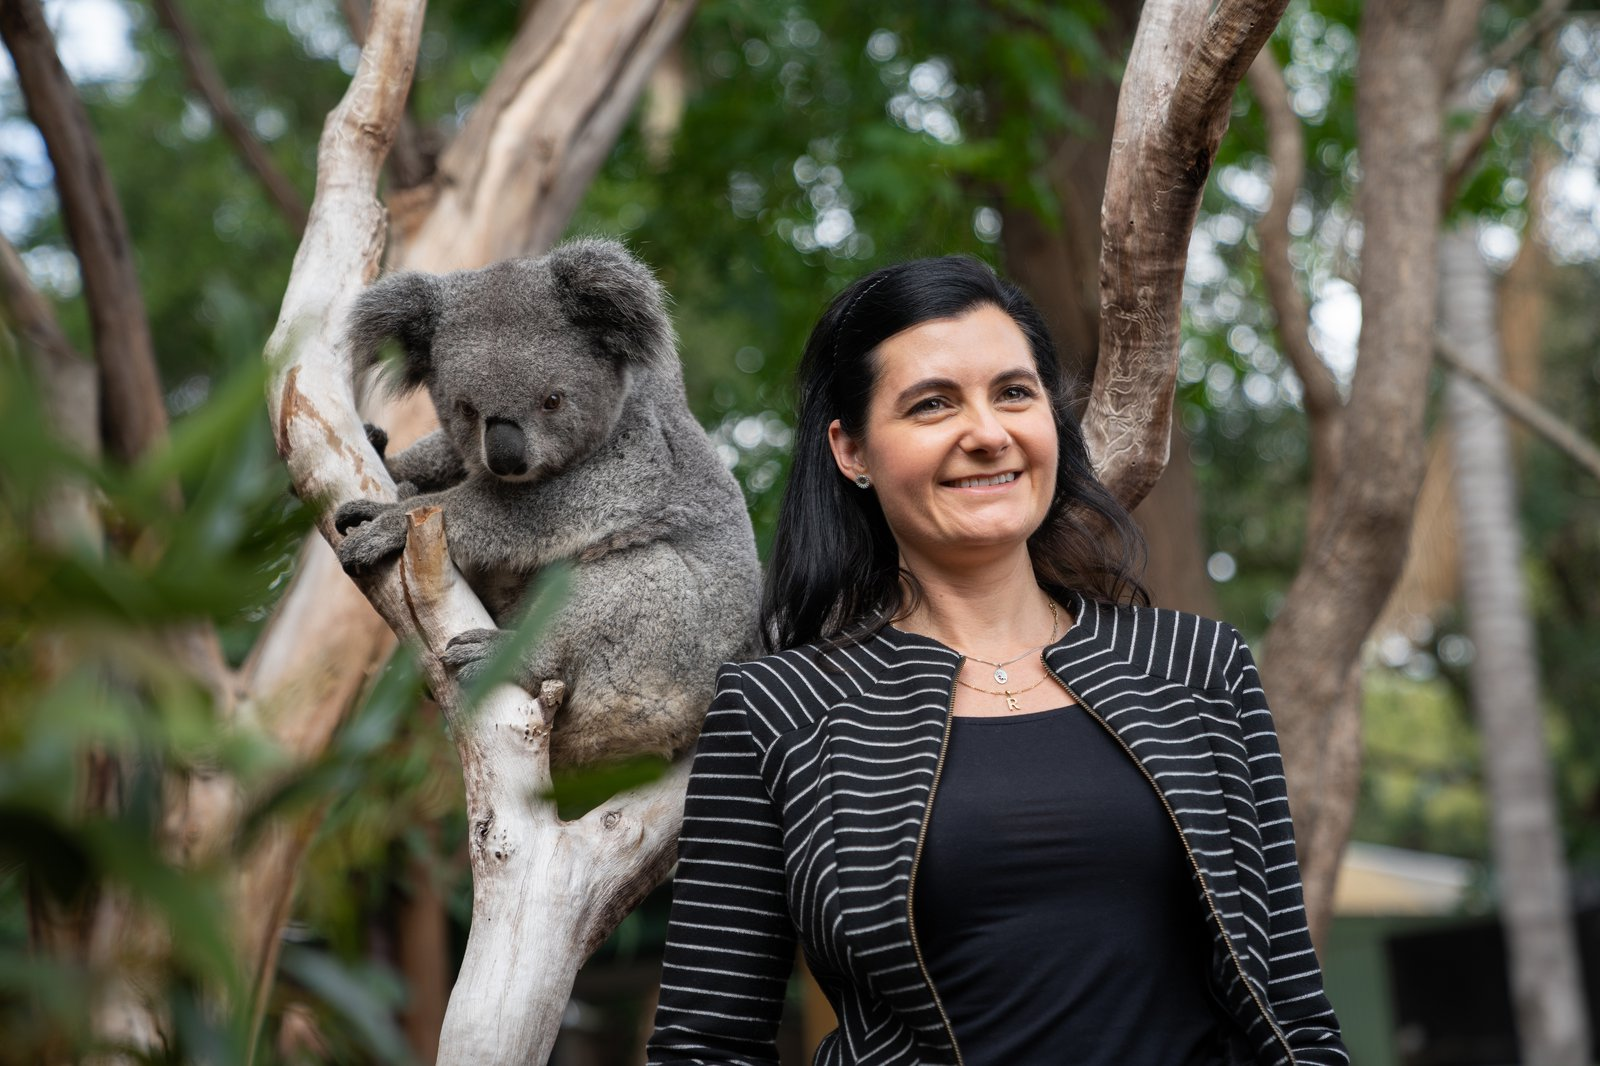 Rebecca Johnson and Koala at Featherdale Wildlife Park